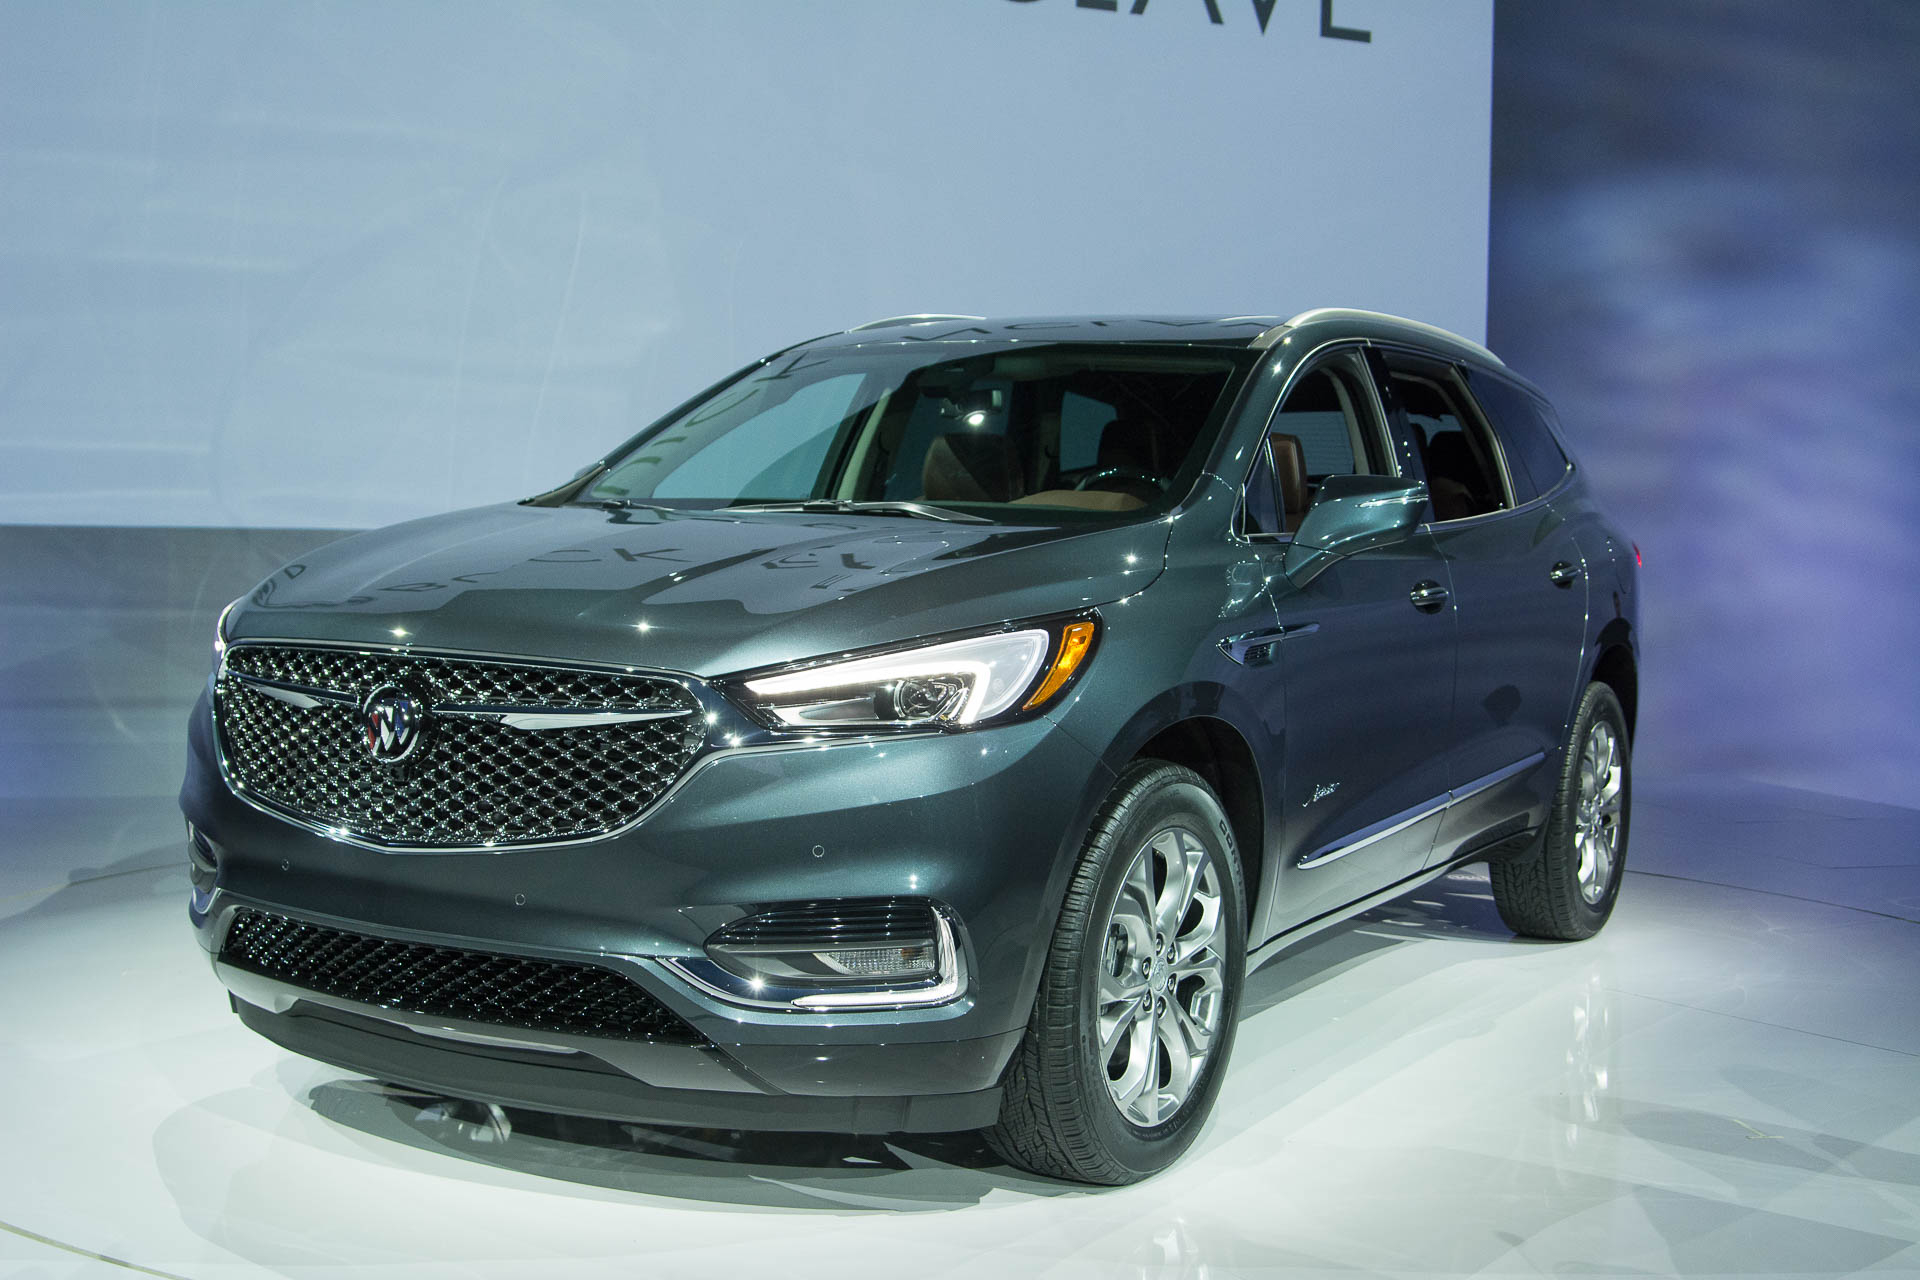 2018 Buick Enclave Revealed With Luxurious Avenir Trim 2022 Buick Enclave Trim Levels, Transmission, Towing